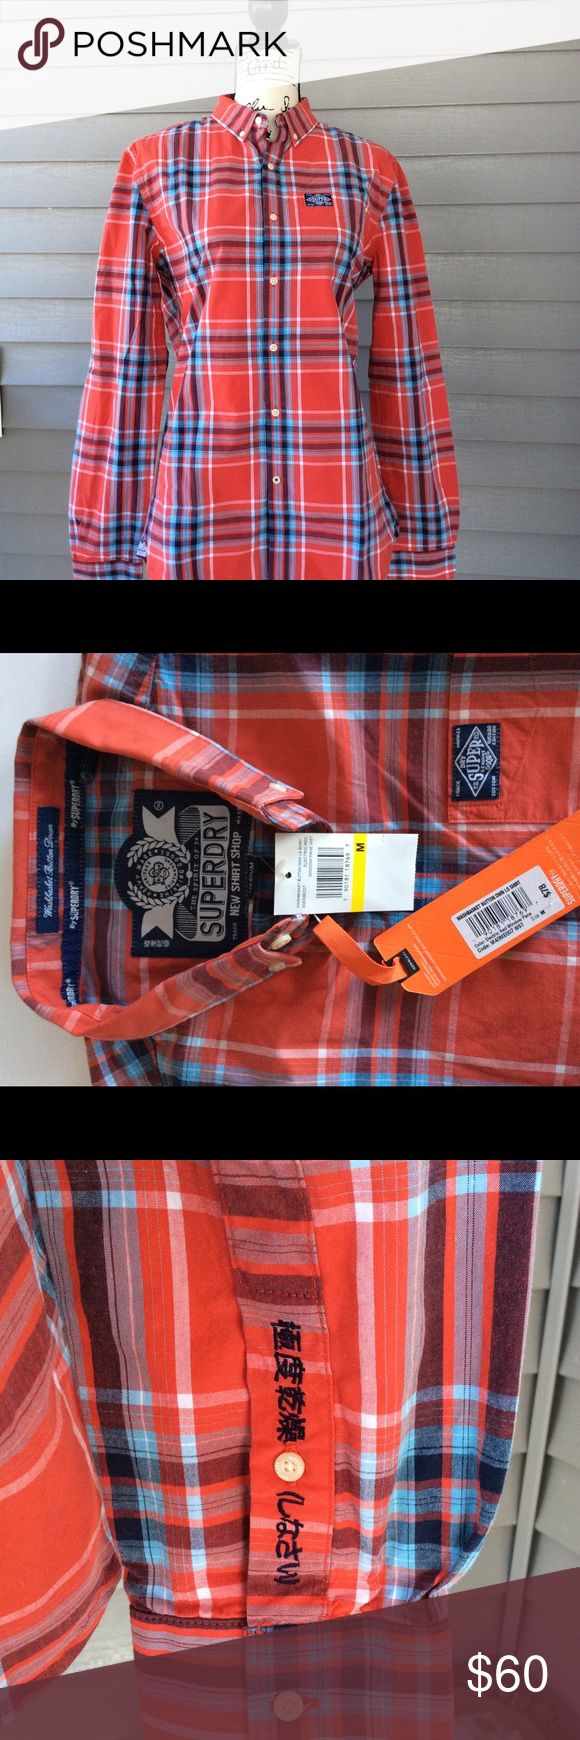 Superdry NWT men's buttondown Superdry casual button down shirt. Washable NWT. Red. 100% cotton. Soft . Men's medium.  One front chest pocket with logo. Features logo on back hook, sleeve and front. Shown on a small size mannequin. Superdry Shirts Casual Button Down Shirts